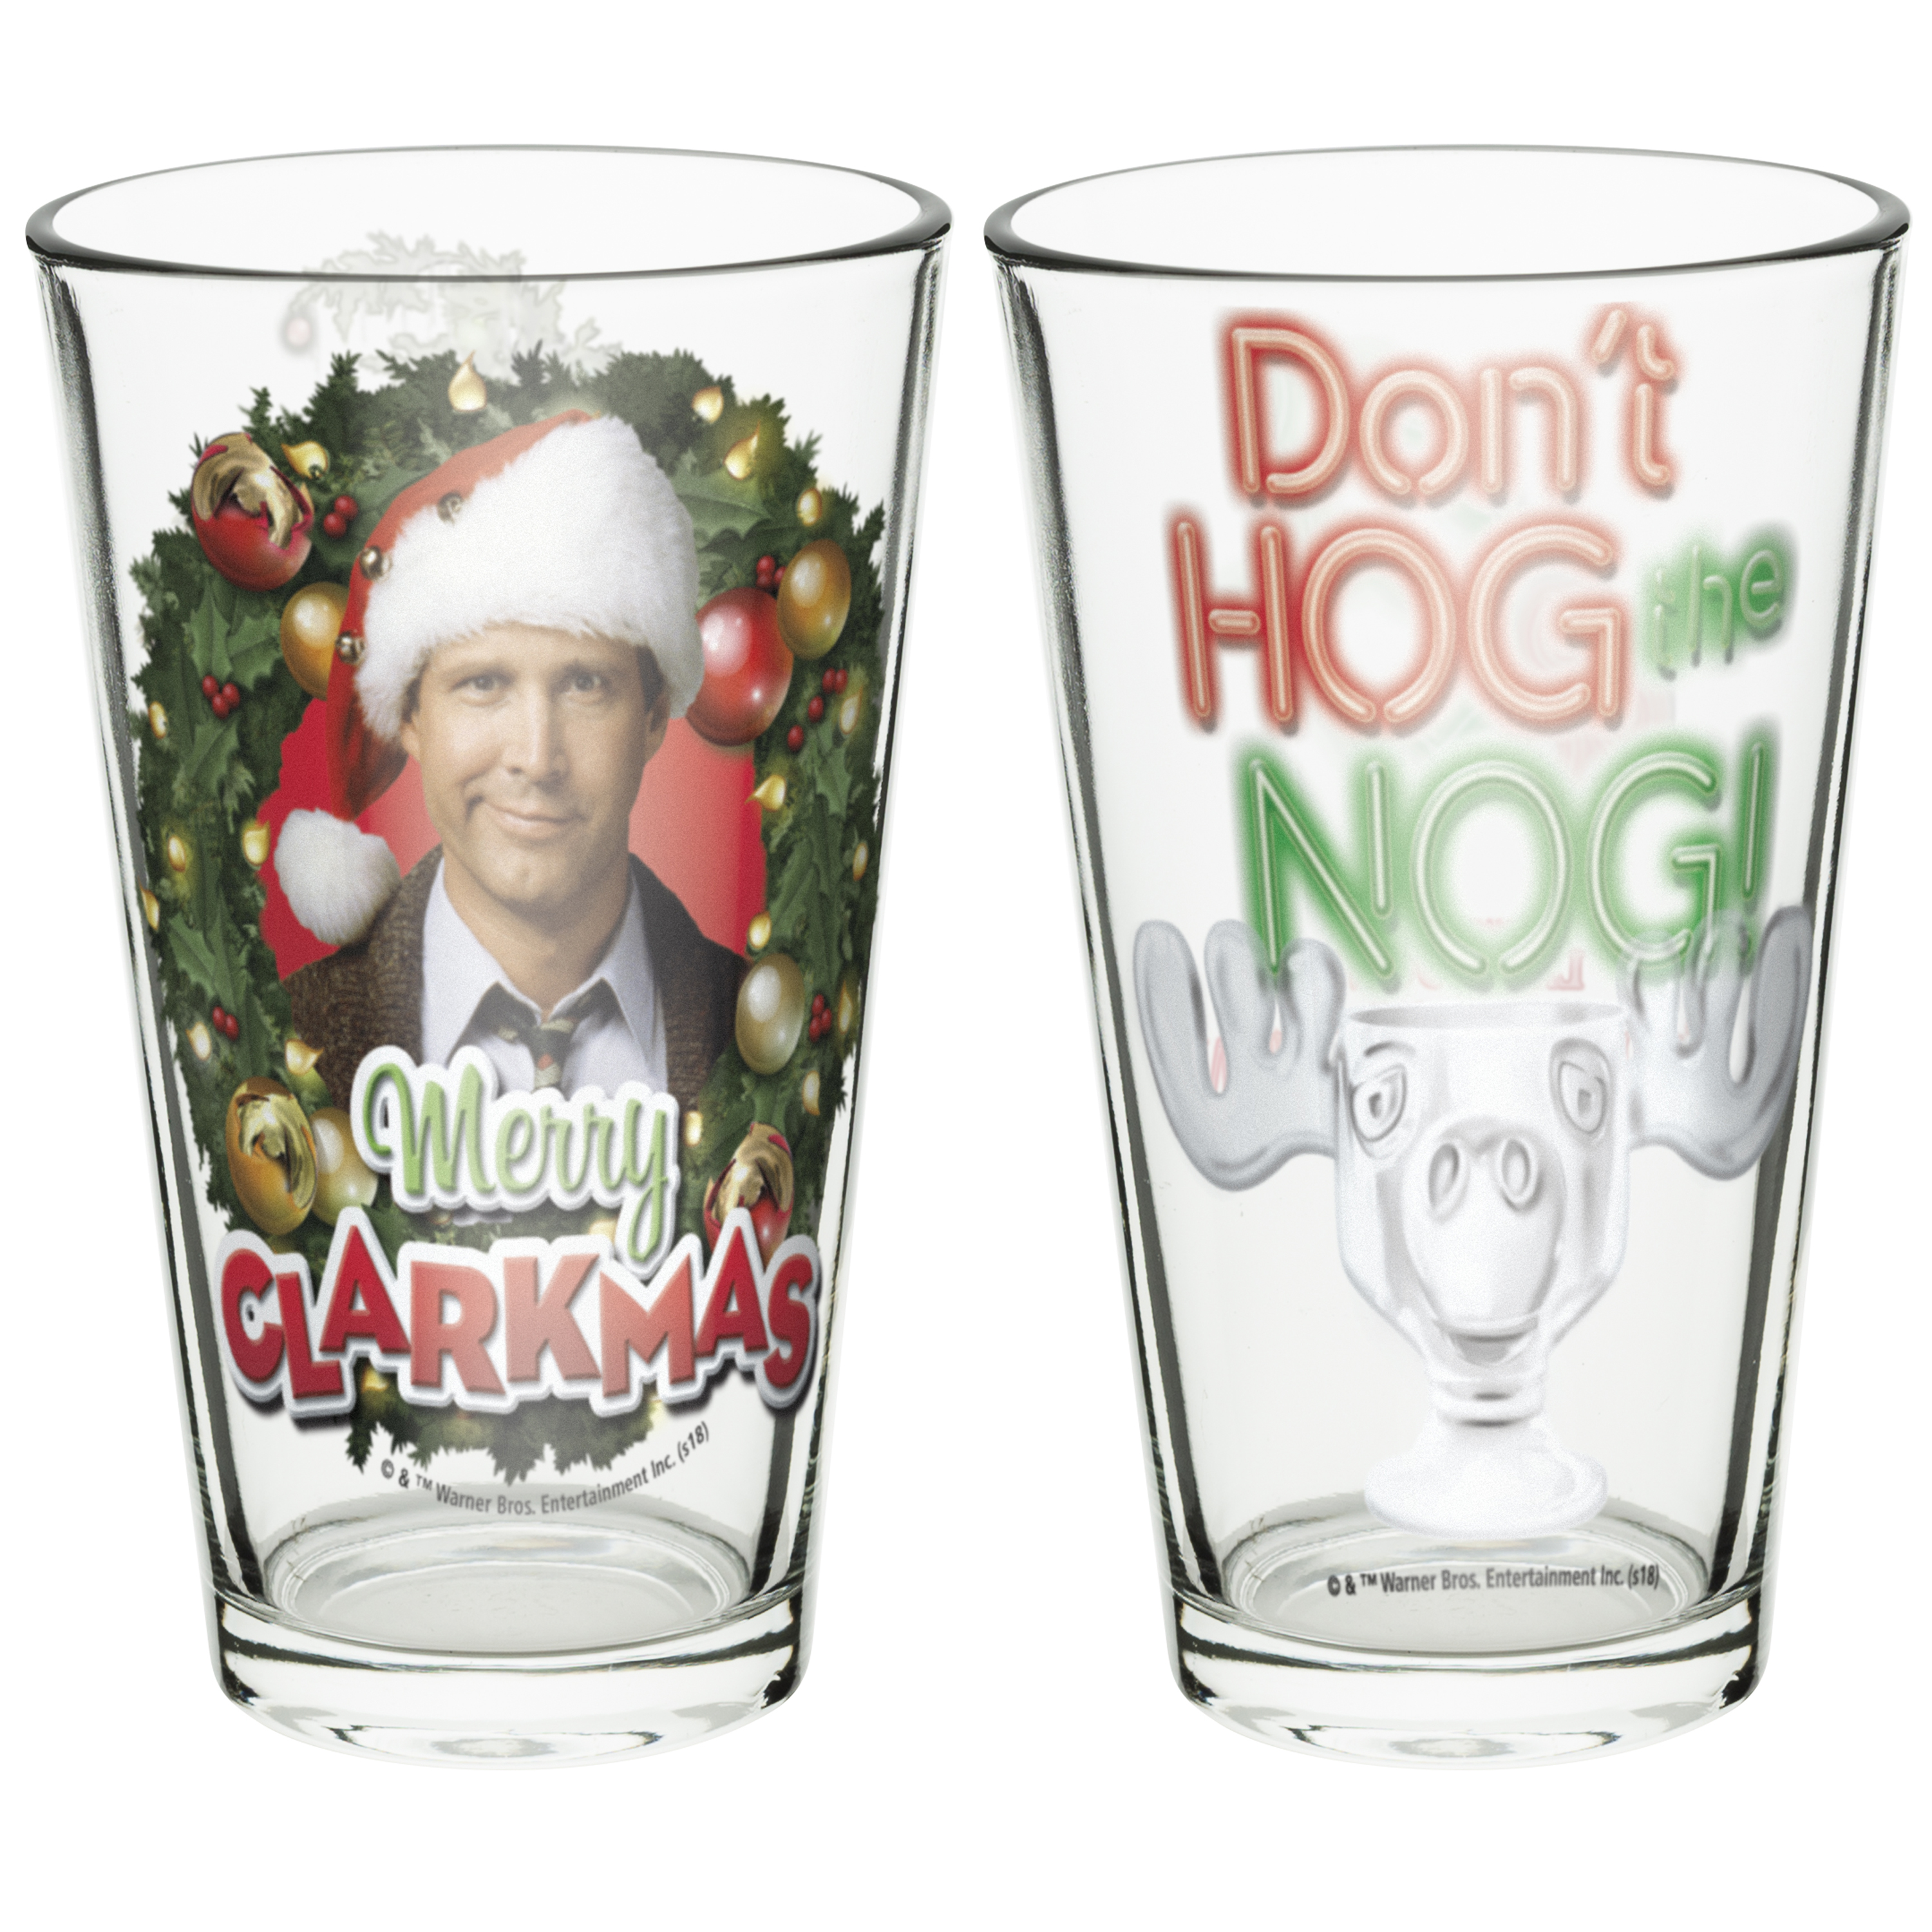 National Lampoon's Christmas Vacation 16 ounce Pint Glasses, Clark Griswold, 2-piece set slideshow image 2